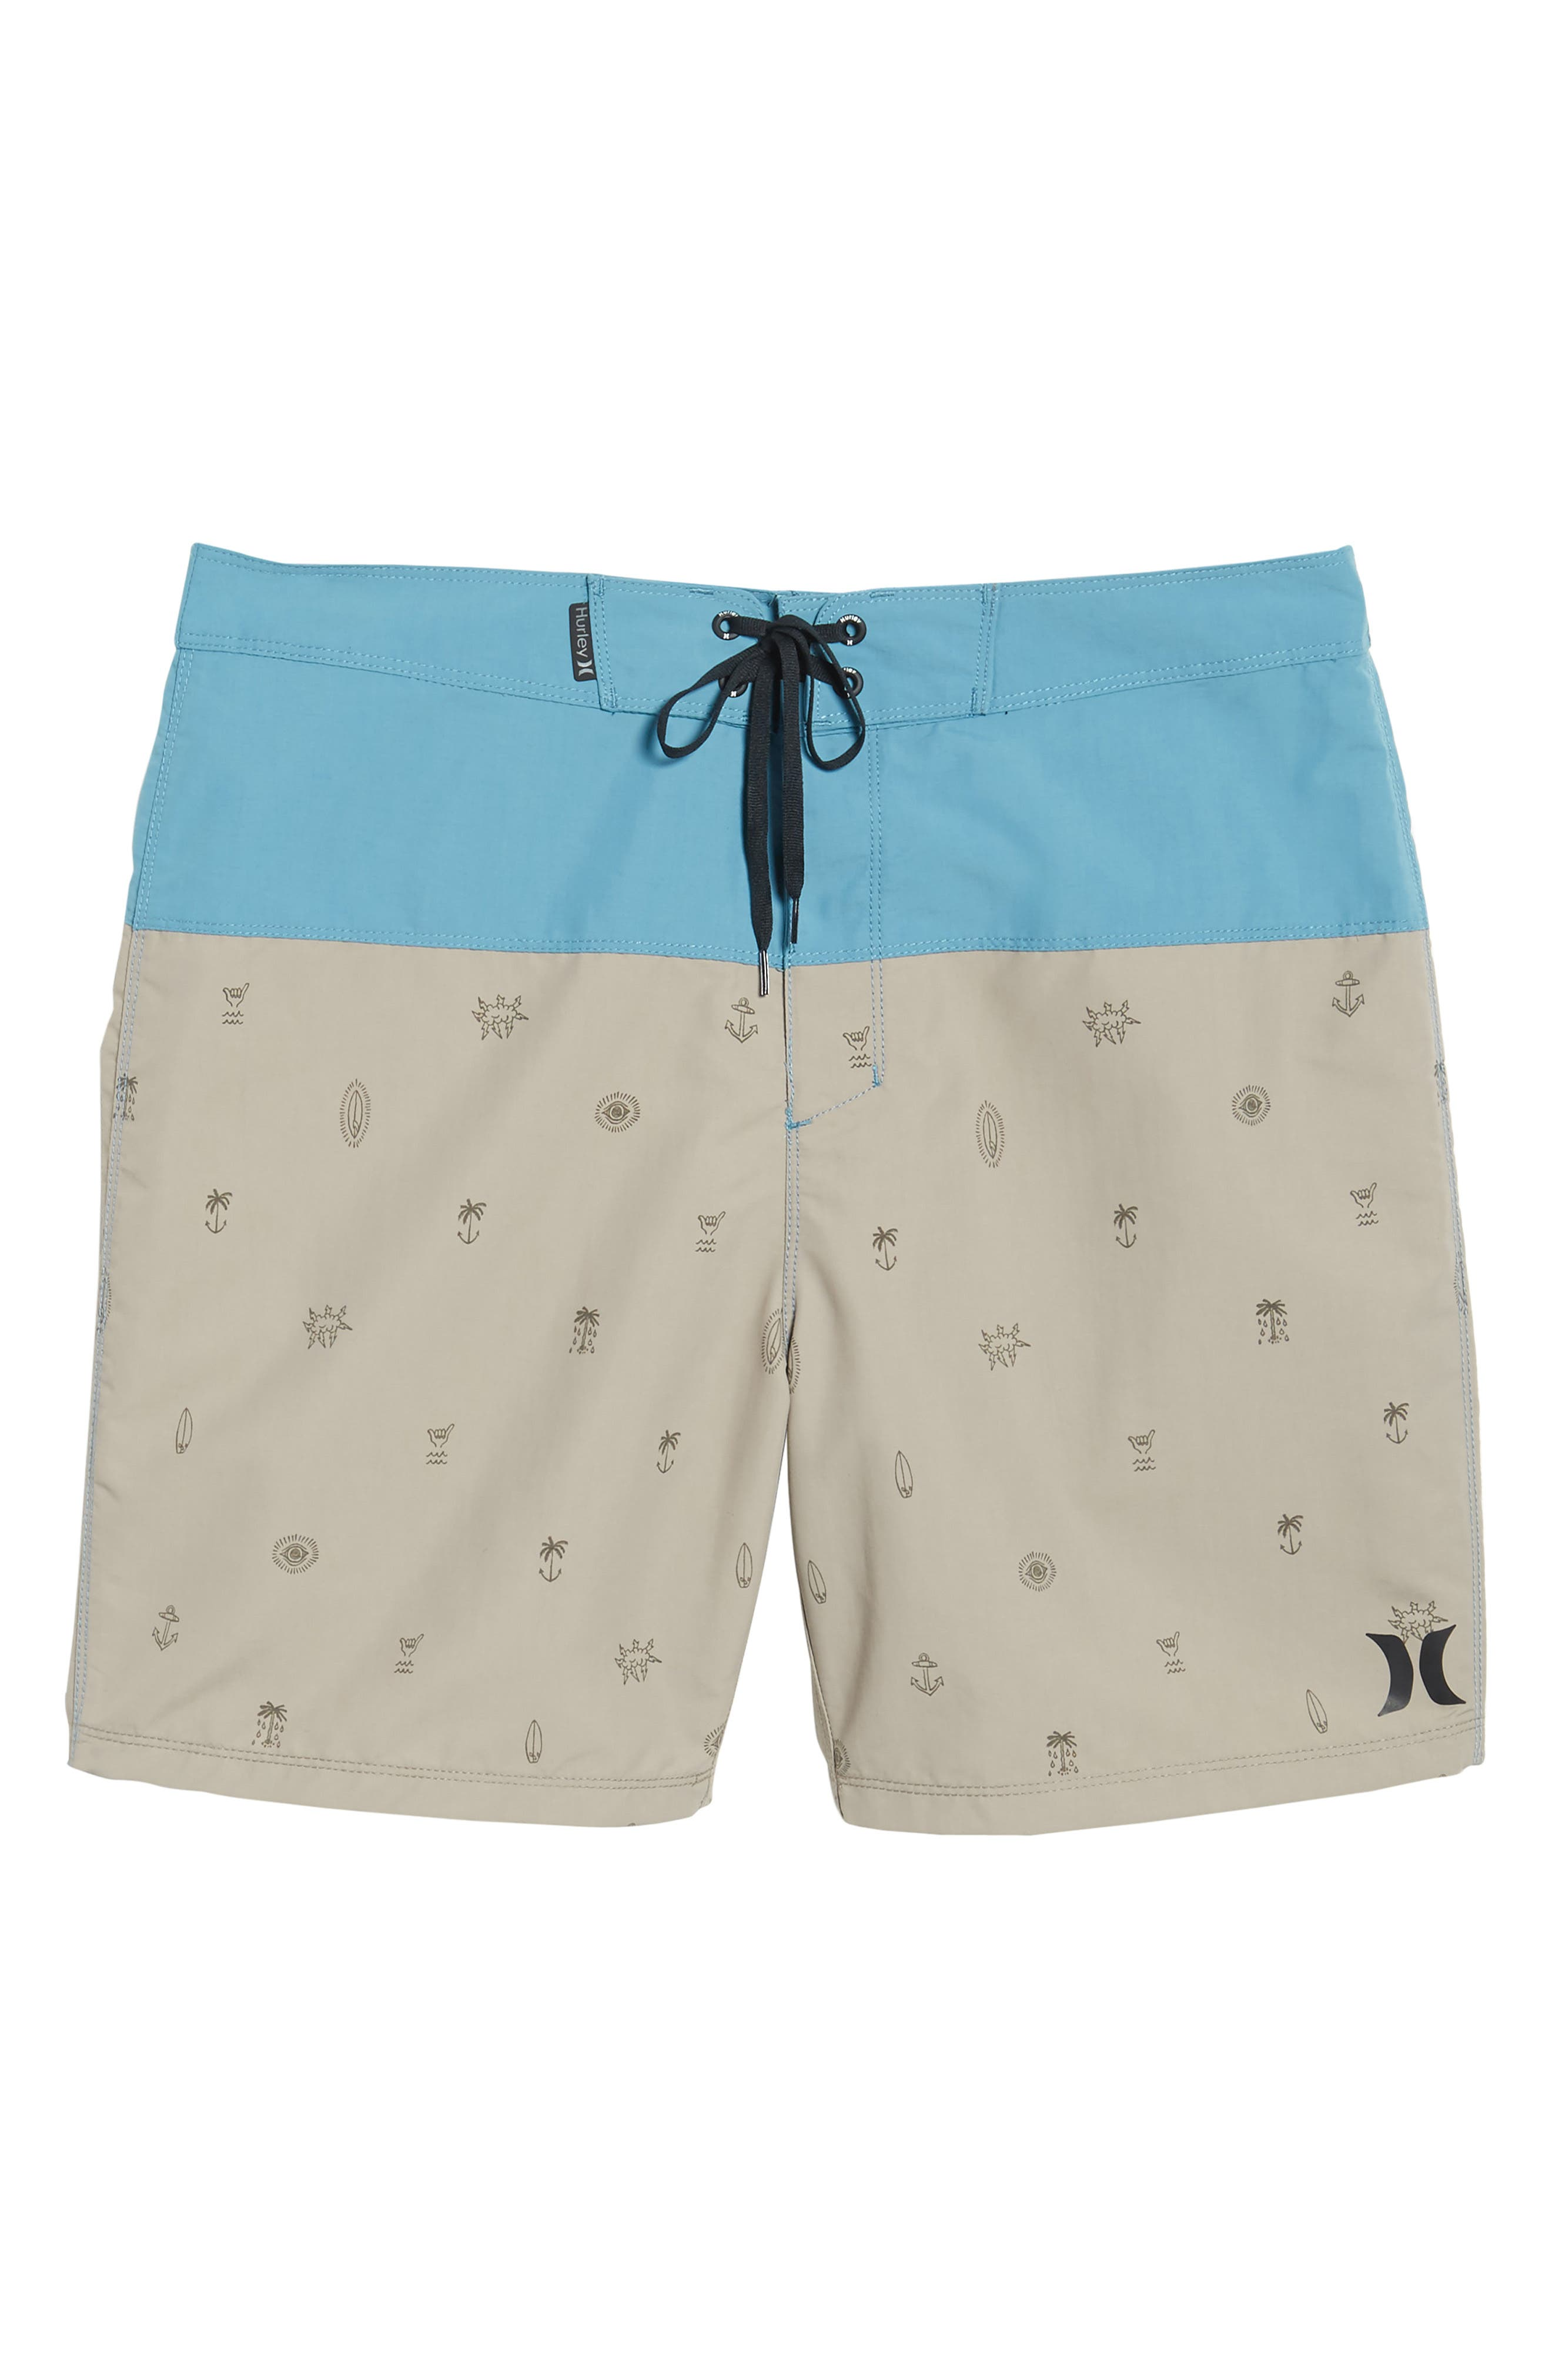 School Yards Board Shorts,                             Alternate thumbnail 12, color,